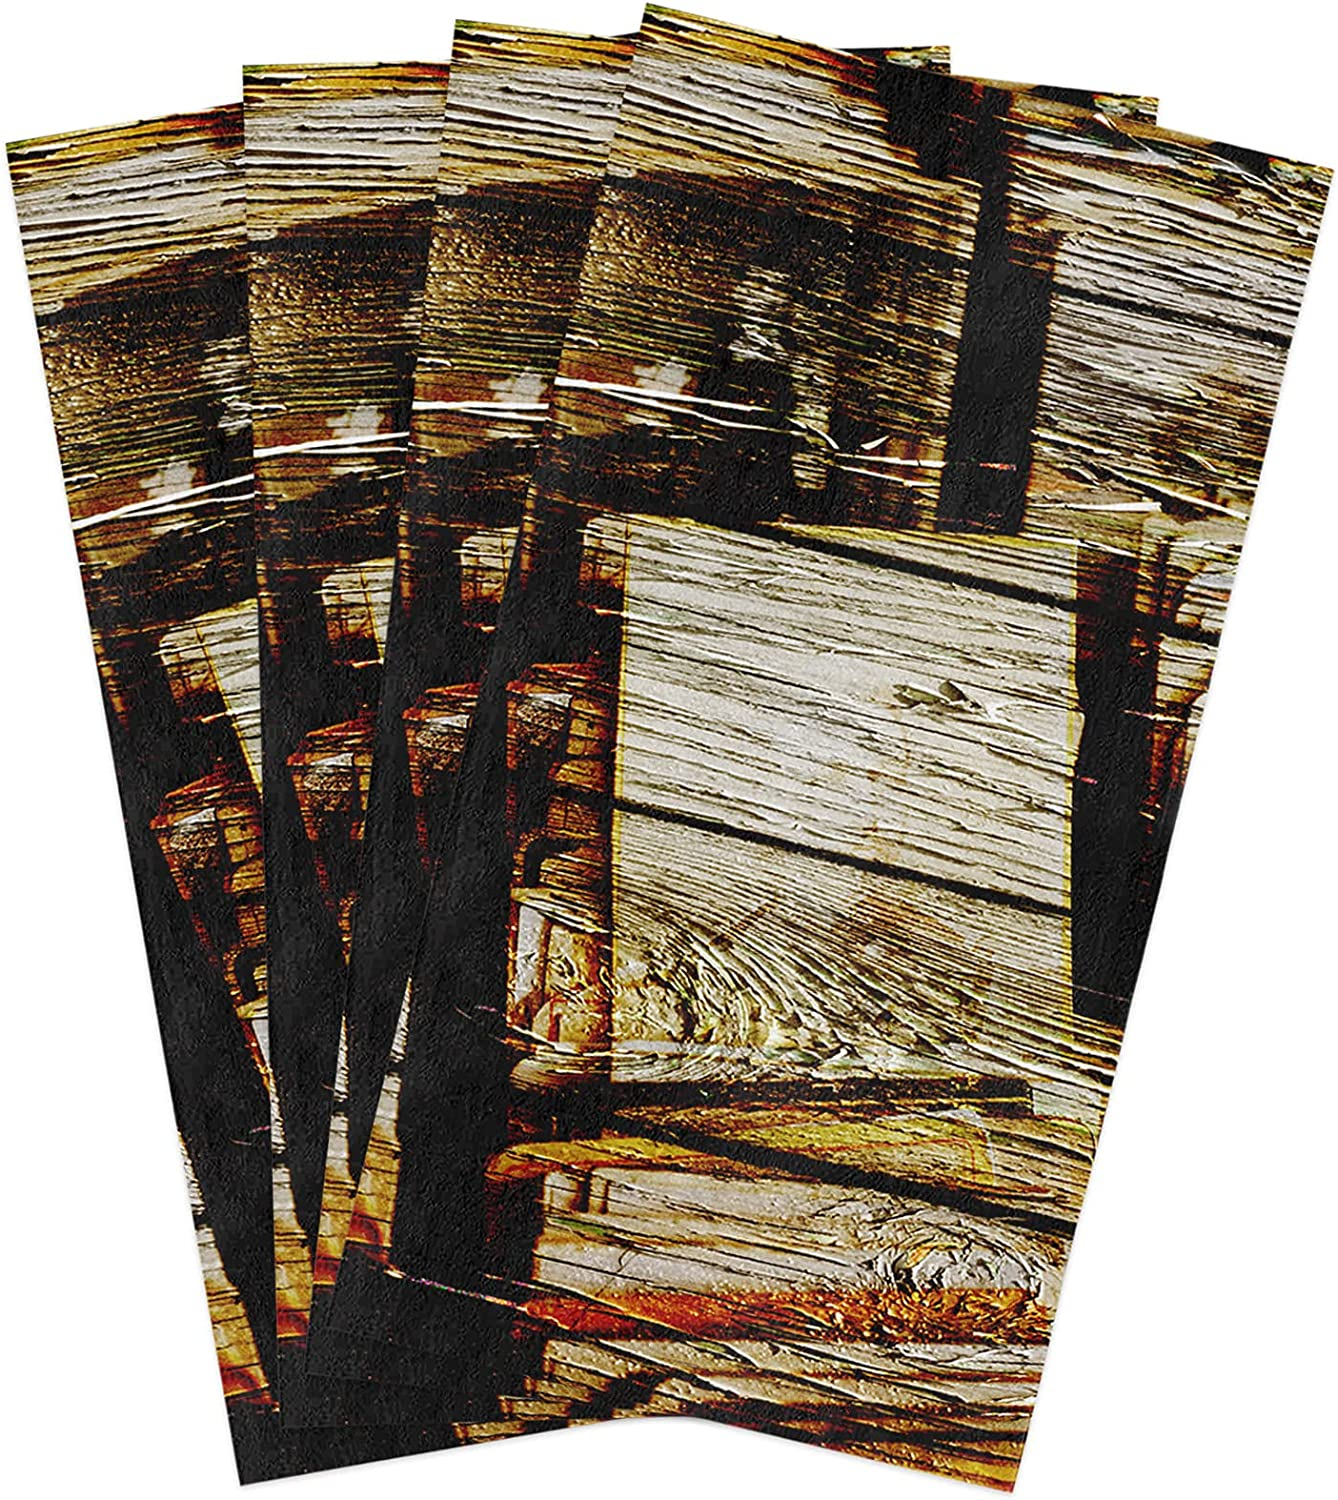 Kitchen Dish Towels Retro Wood Absorbent and Sales of SALE items from new works Photo Soft Cleaning Max 81% OFF